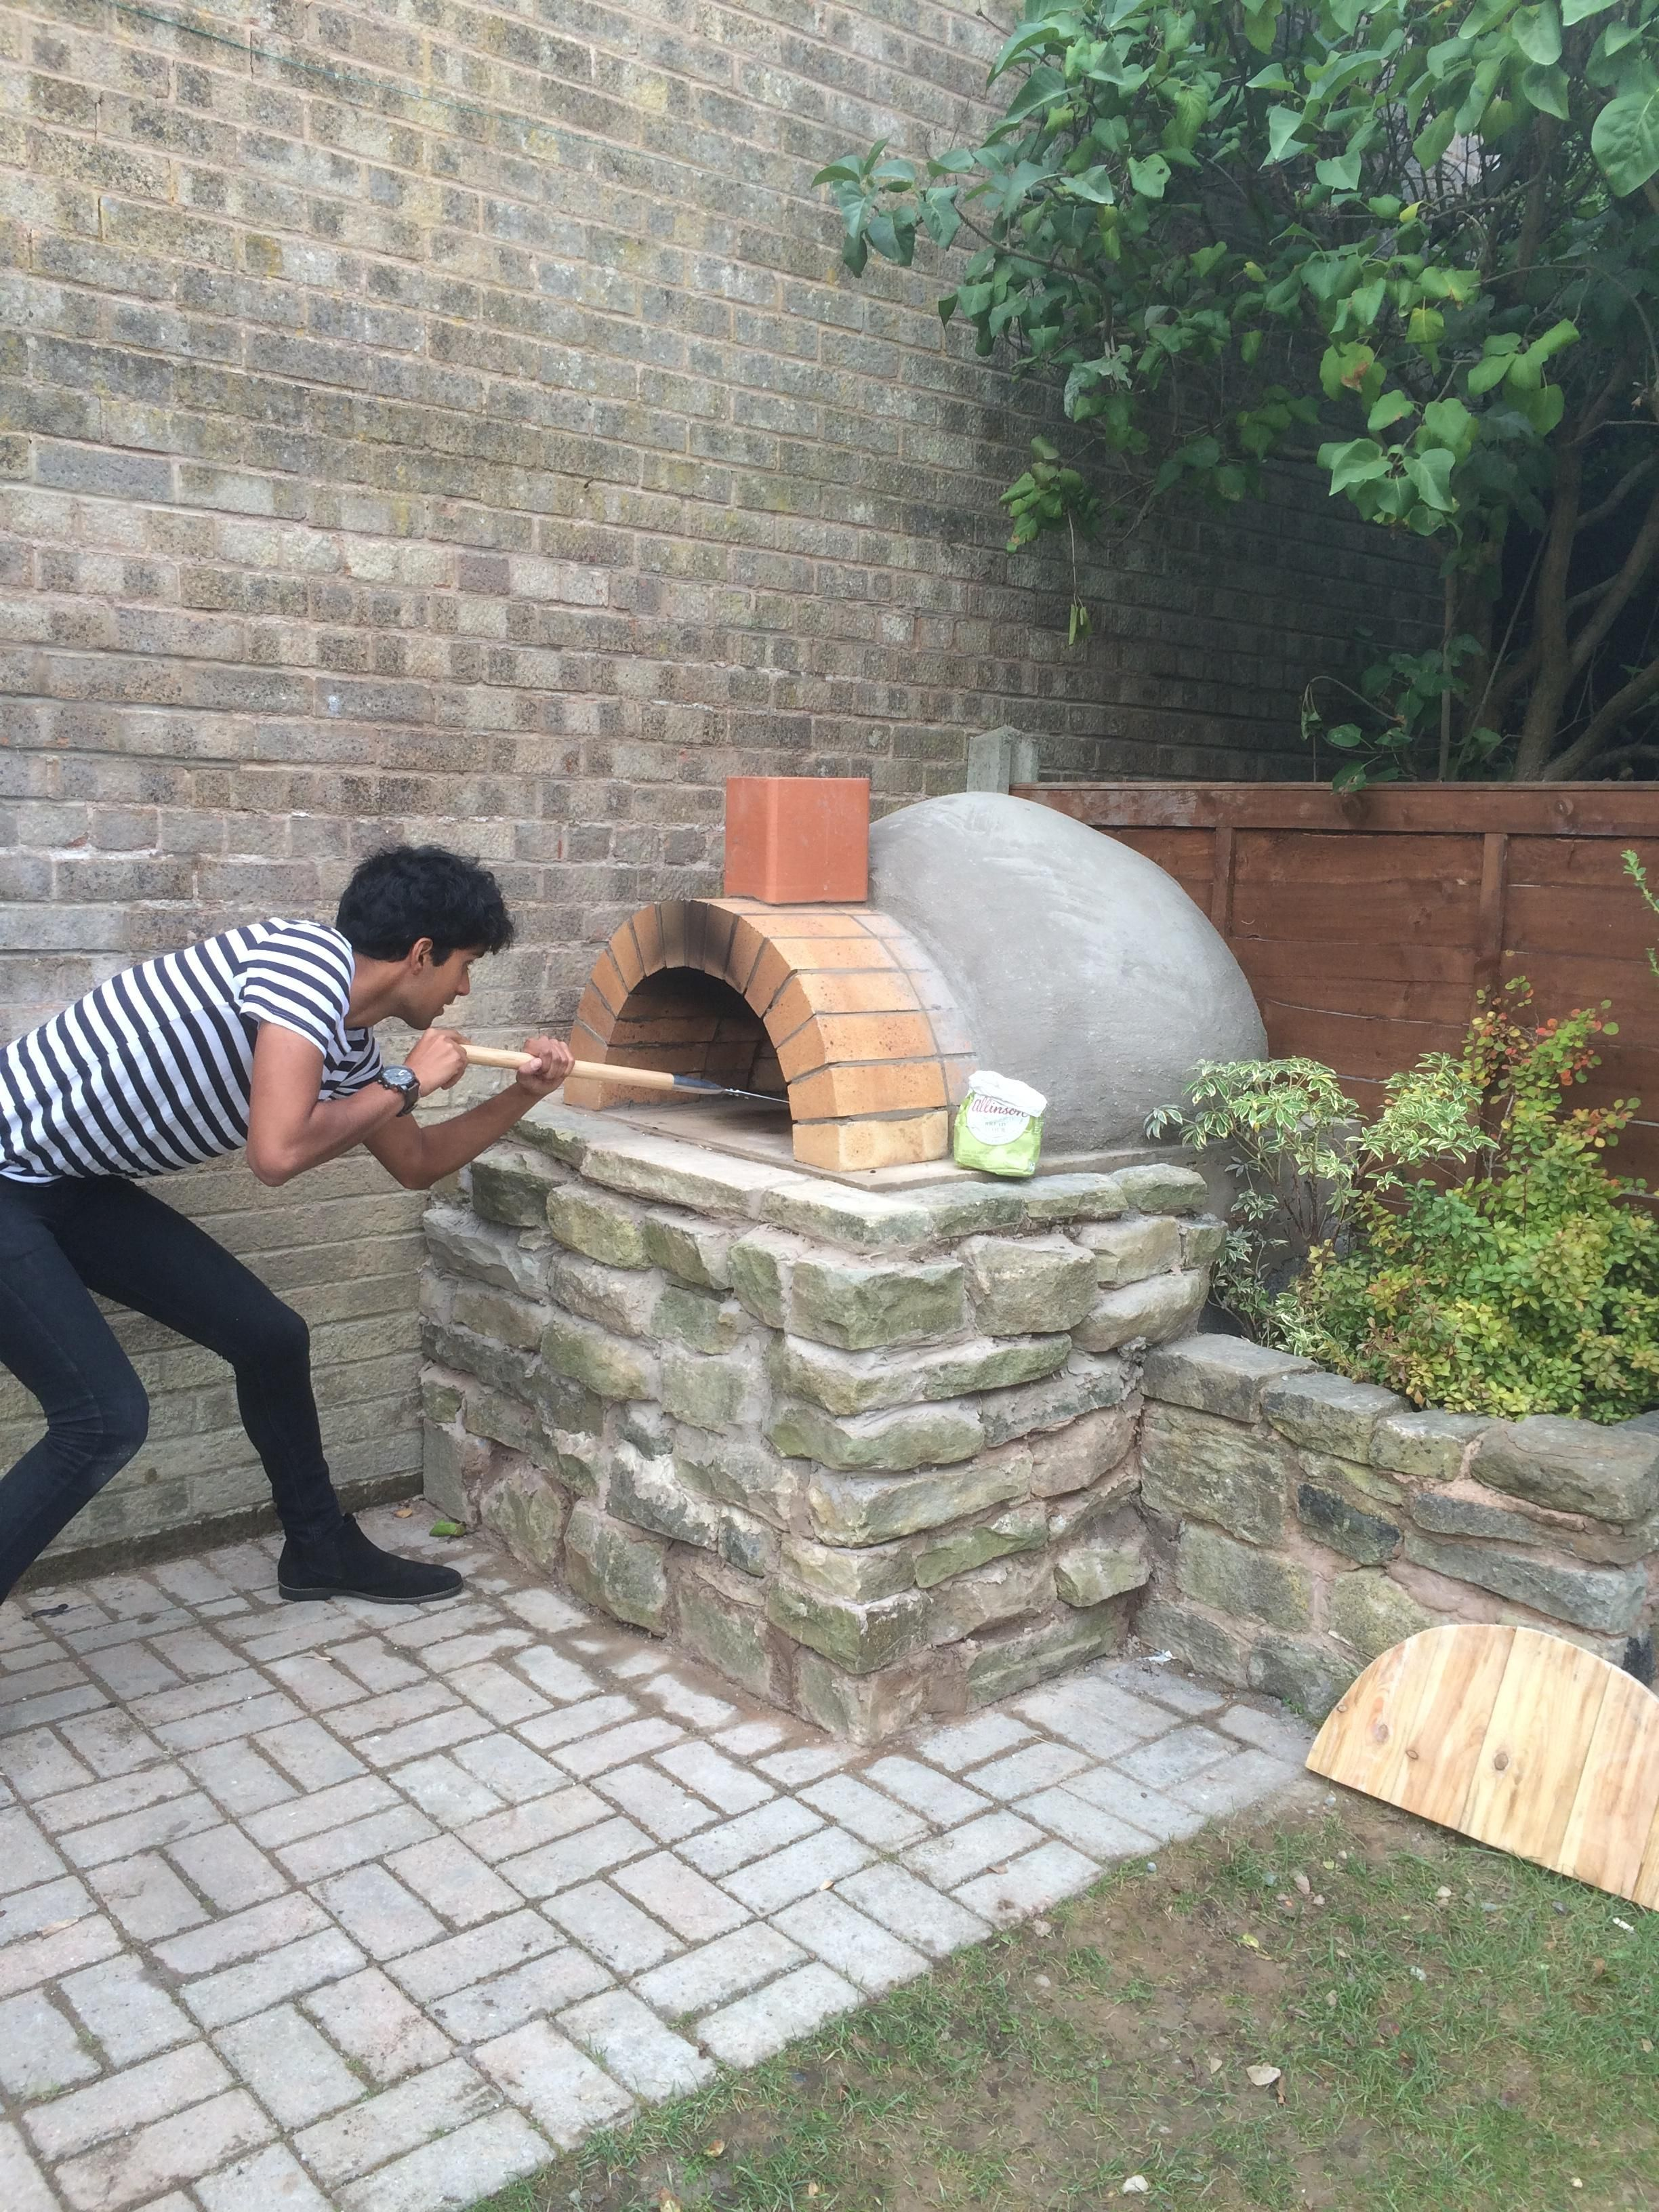 Imgur The Most Awesome Images On The Internet Diy Pizza Oven Homemade Pizza Oven Brick Pizza Oven Backyard diy pizza oven